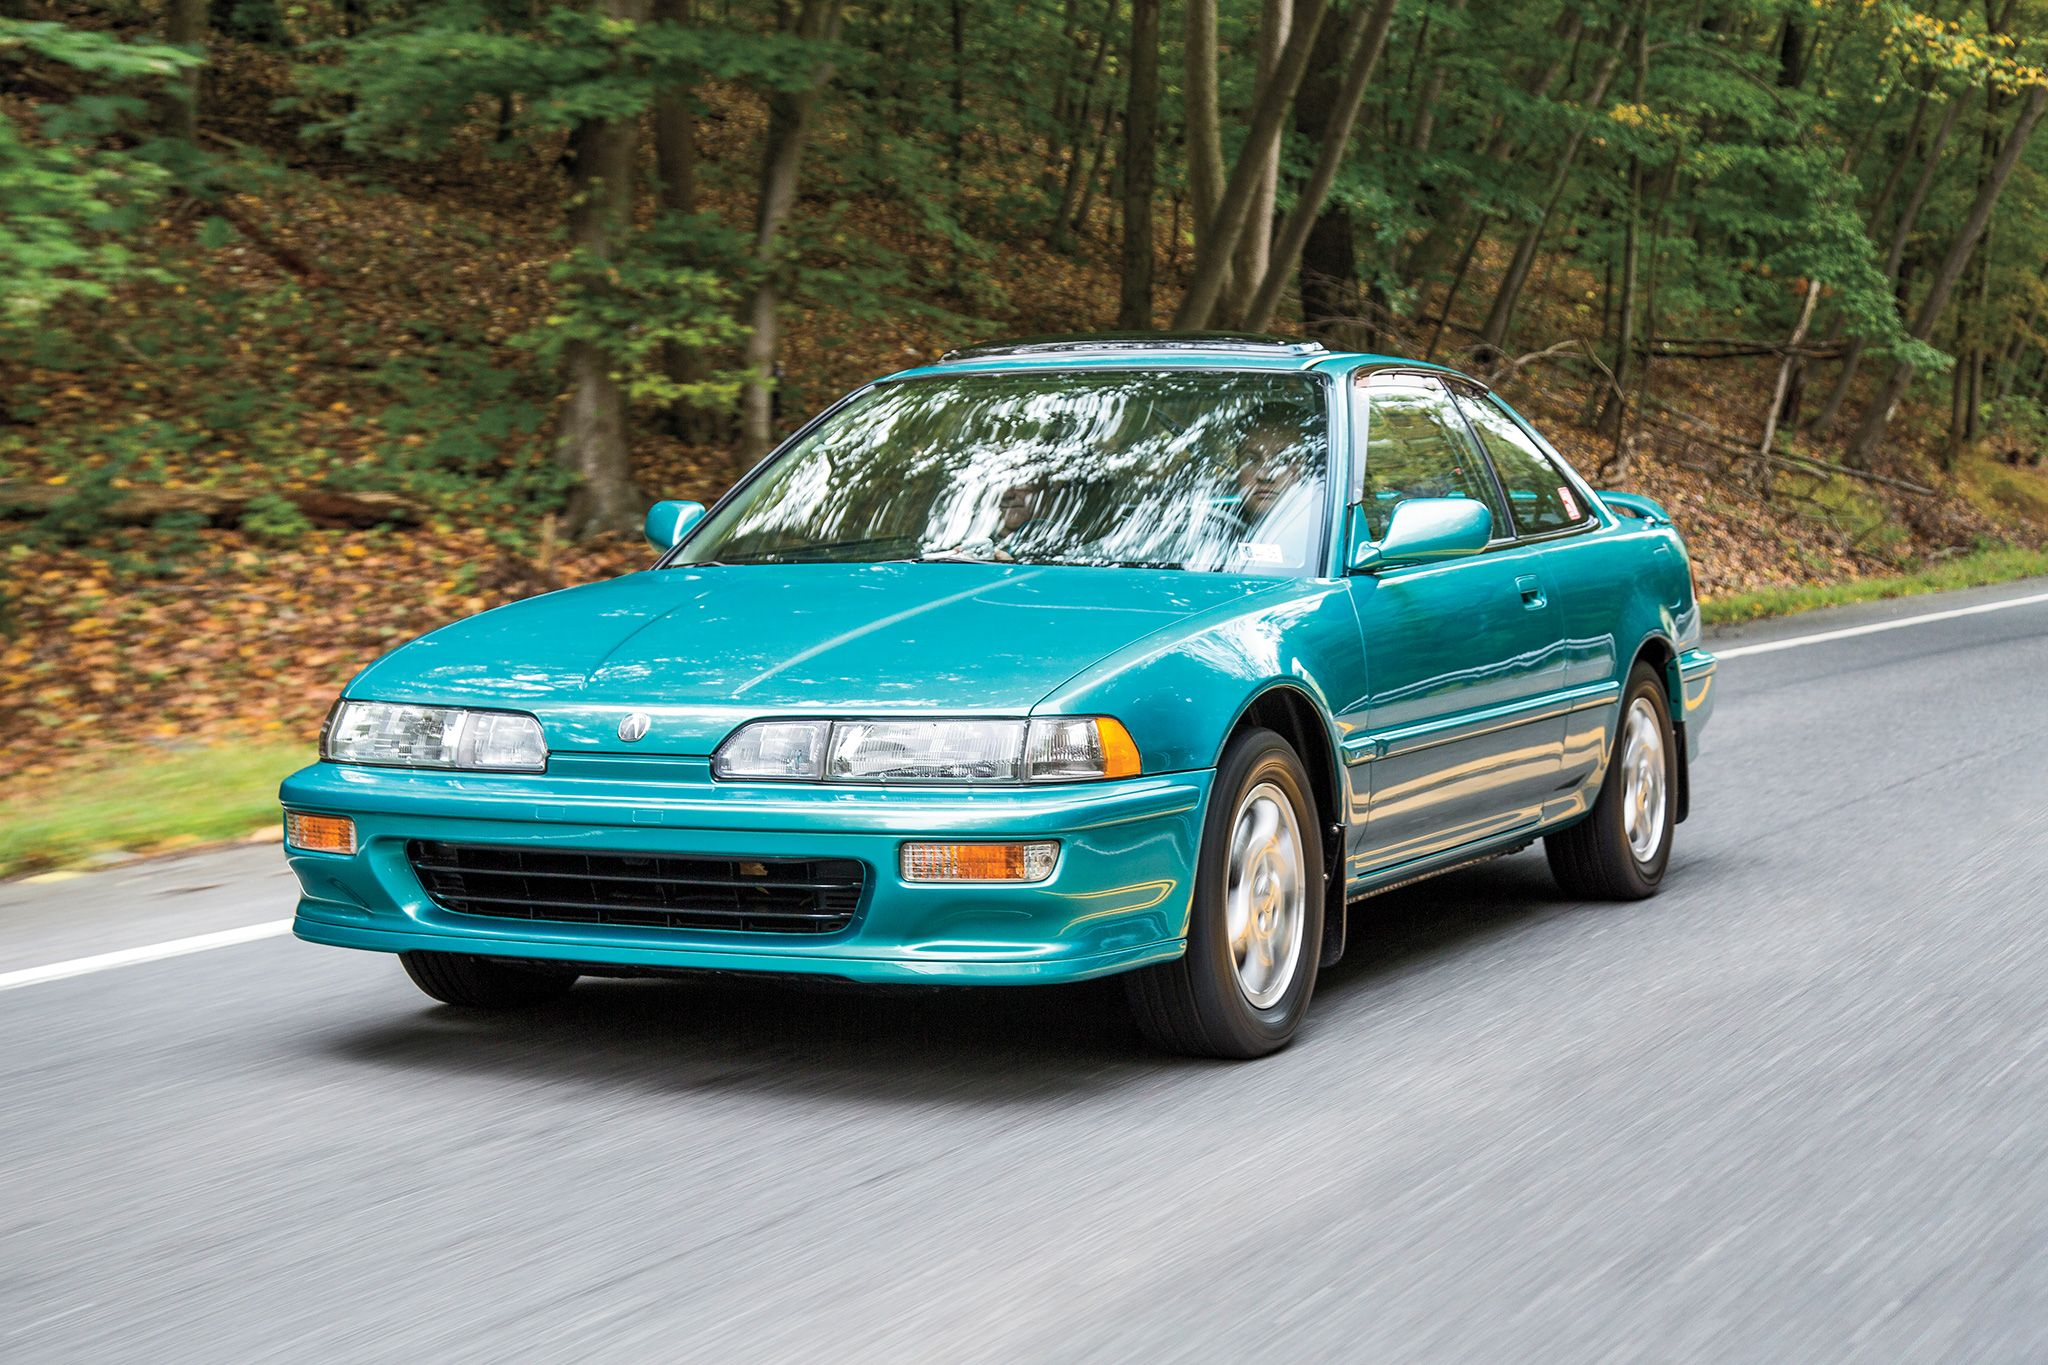 1992-'93 Acura Integra GS-R: The second-generation of the Japanese marque's  coupe boasts state-of-the-art technology and an entertaining character.